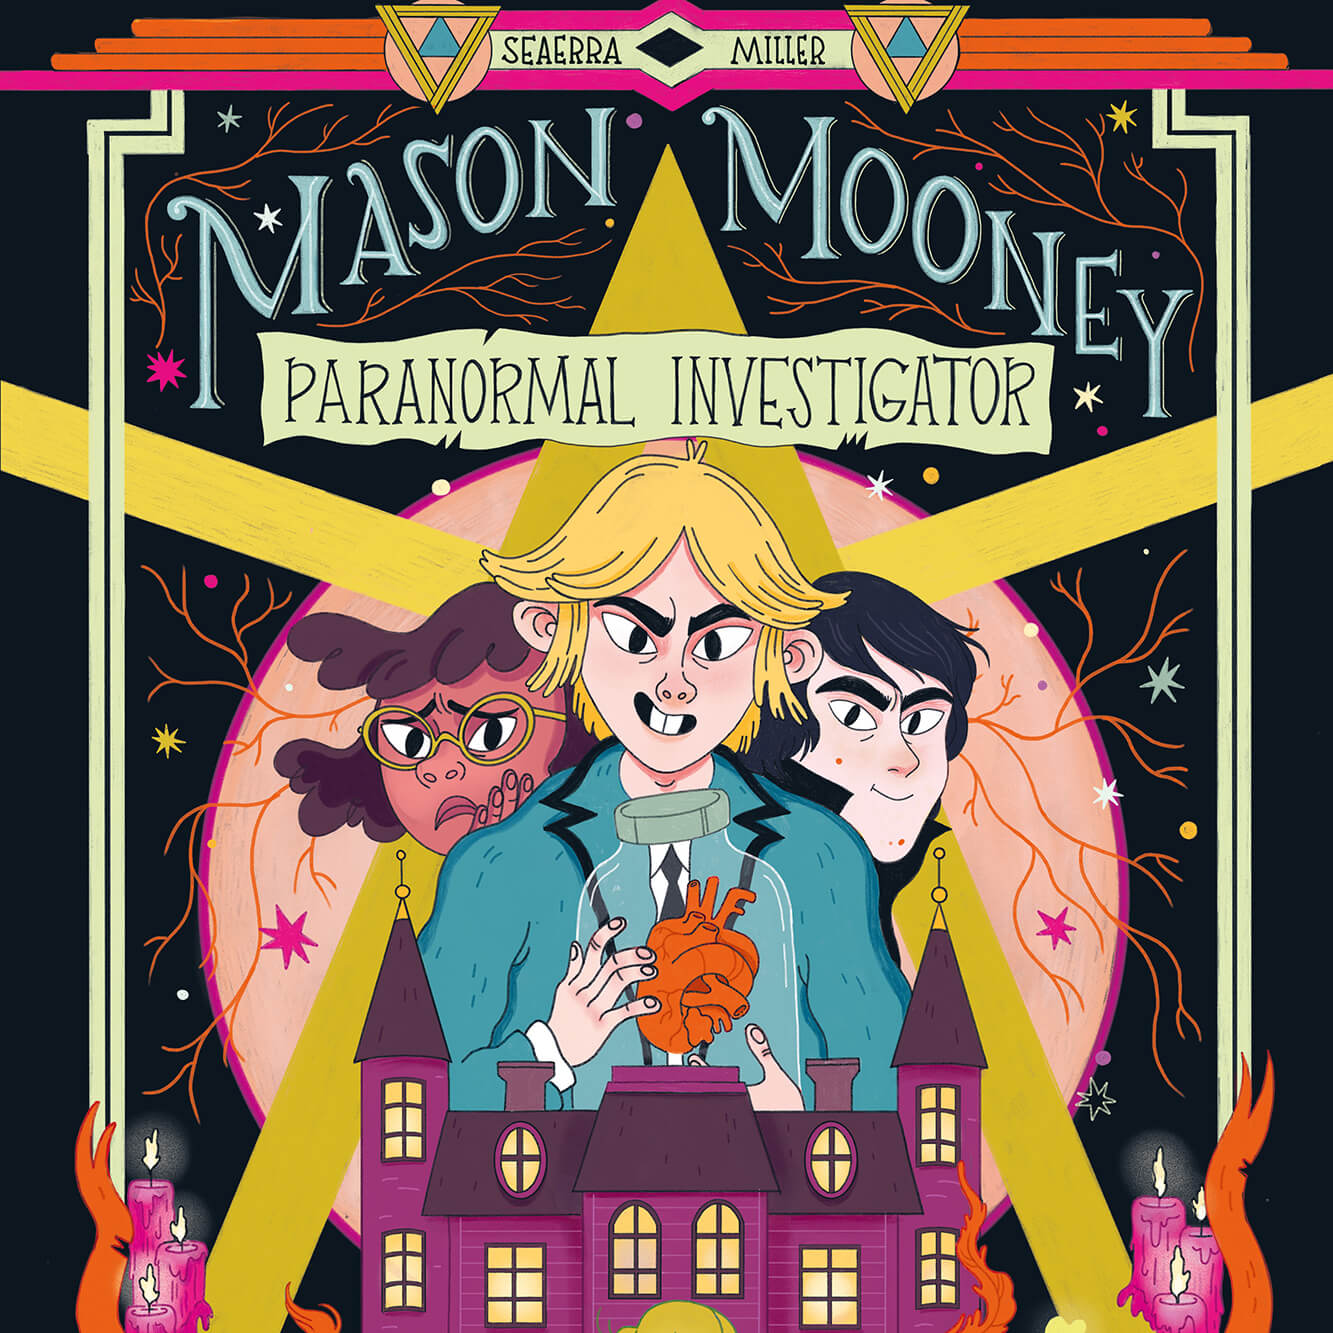 """Image of the book cover for """"Mason Mooney Paranormal Investigator."""""""